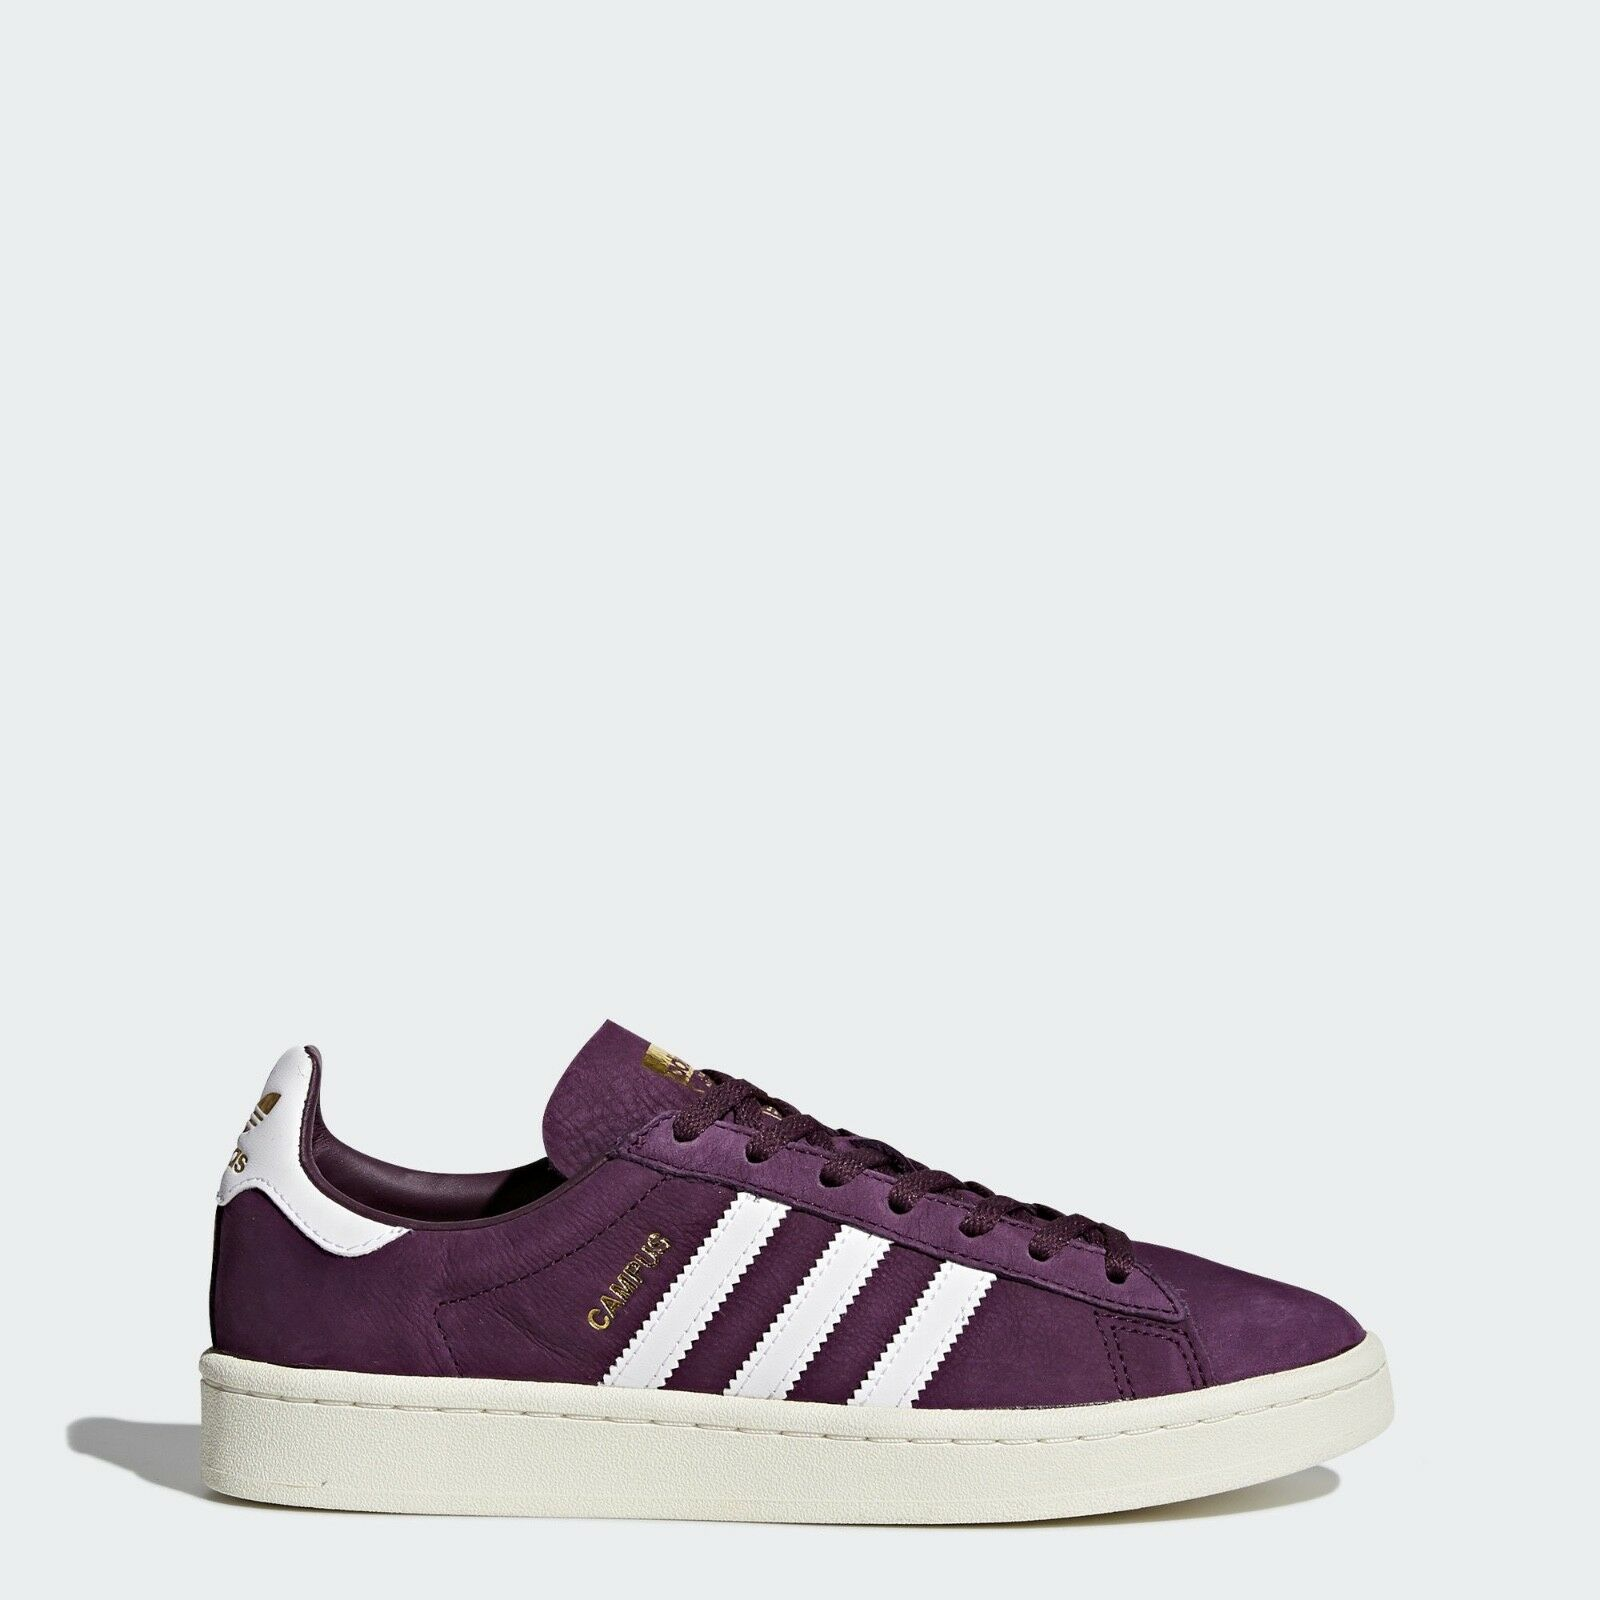 New Femme Adidas Originals Gazelle chaussures Color: Off blanc Taille: 11